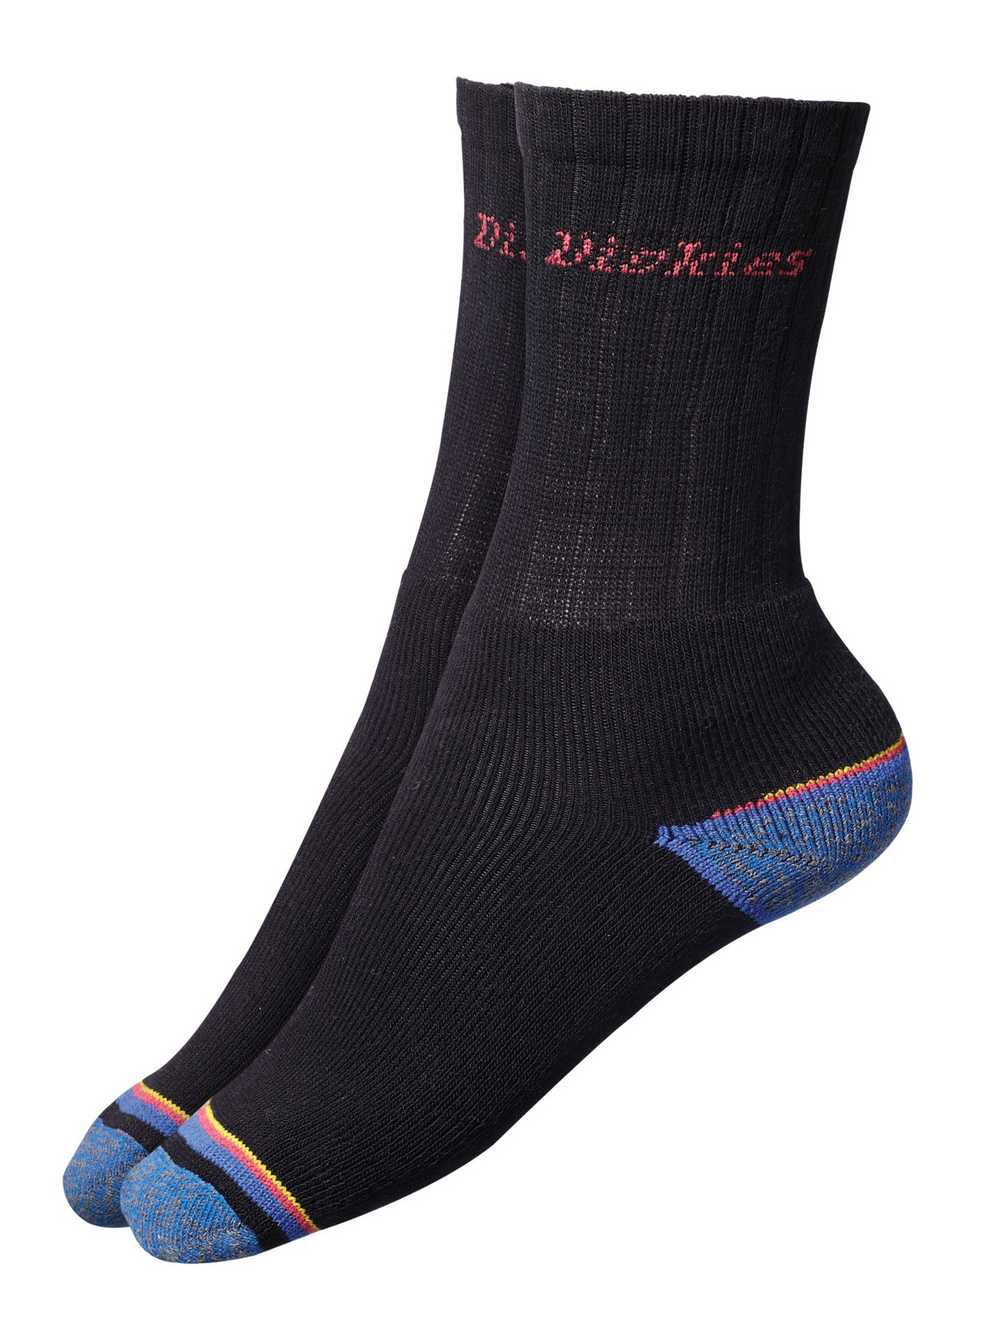 Dickies strong work sock Ctn20 -